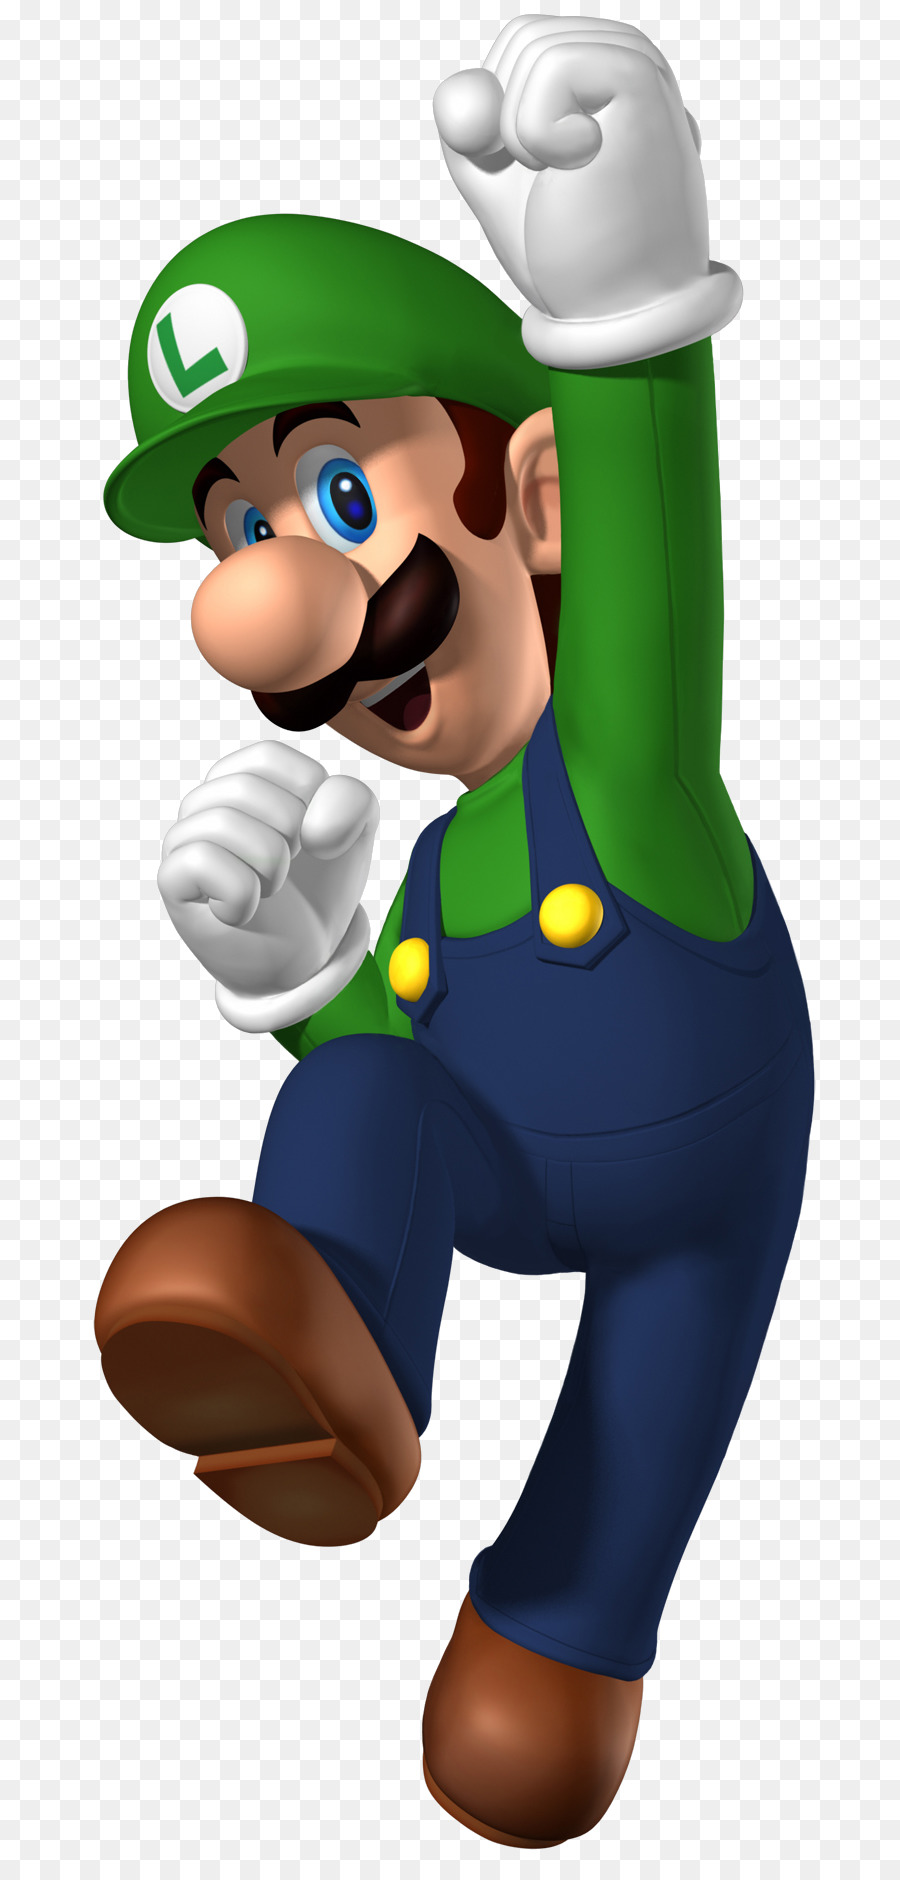 New Super Mario Bros. 2 New Super Mario Bros. 2 New Super Mario Bros. U -  Luigi Transparent PNG - Mario Bros PNG